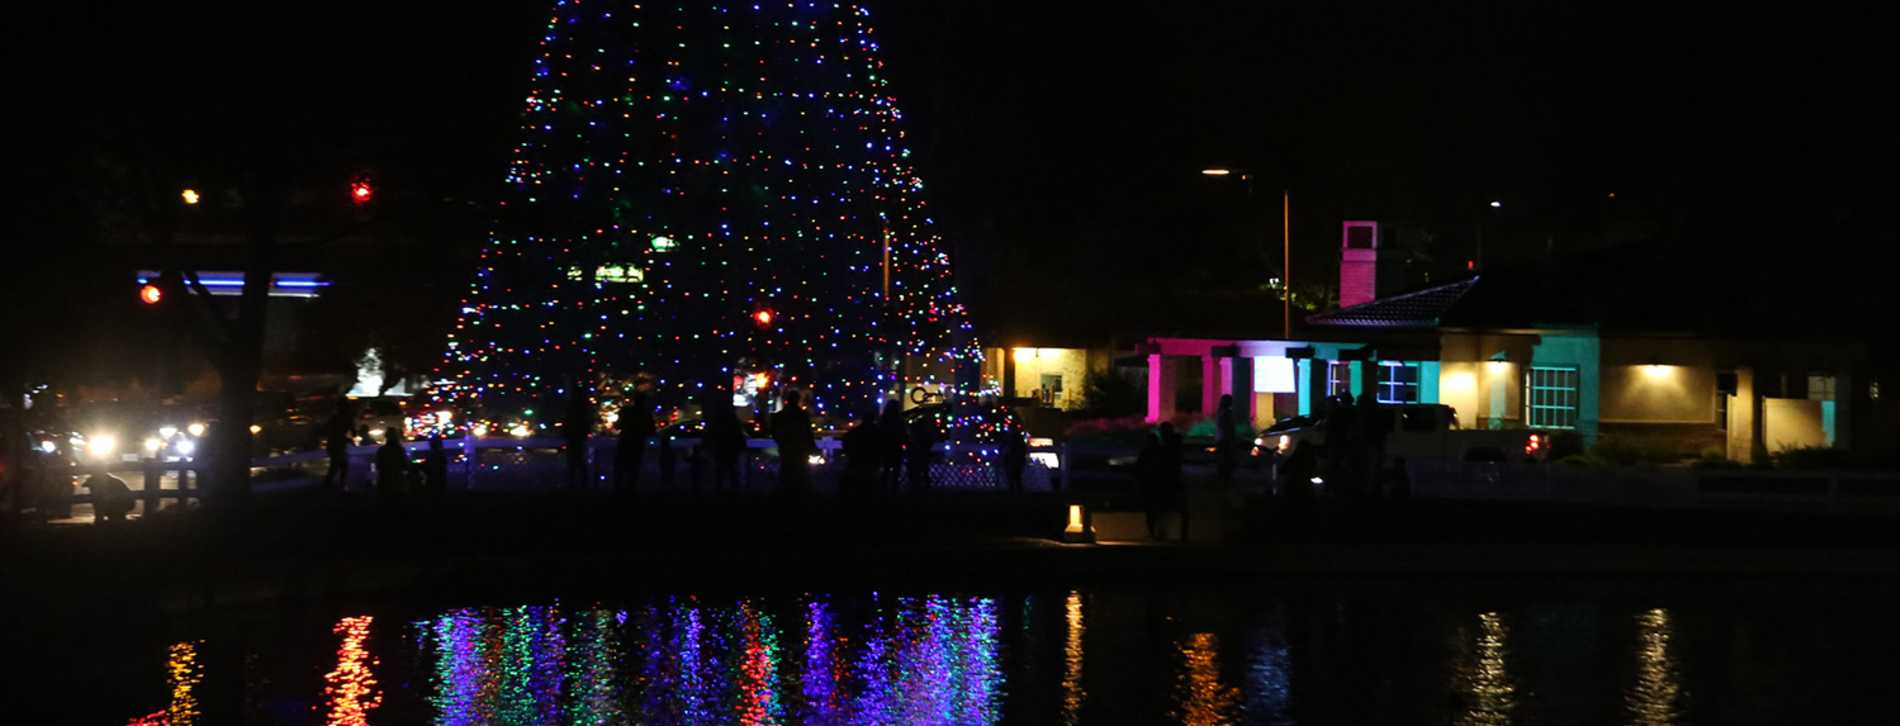 Christmas Tree Lighting.Christmas Tree Lighting At The Pond